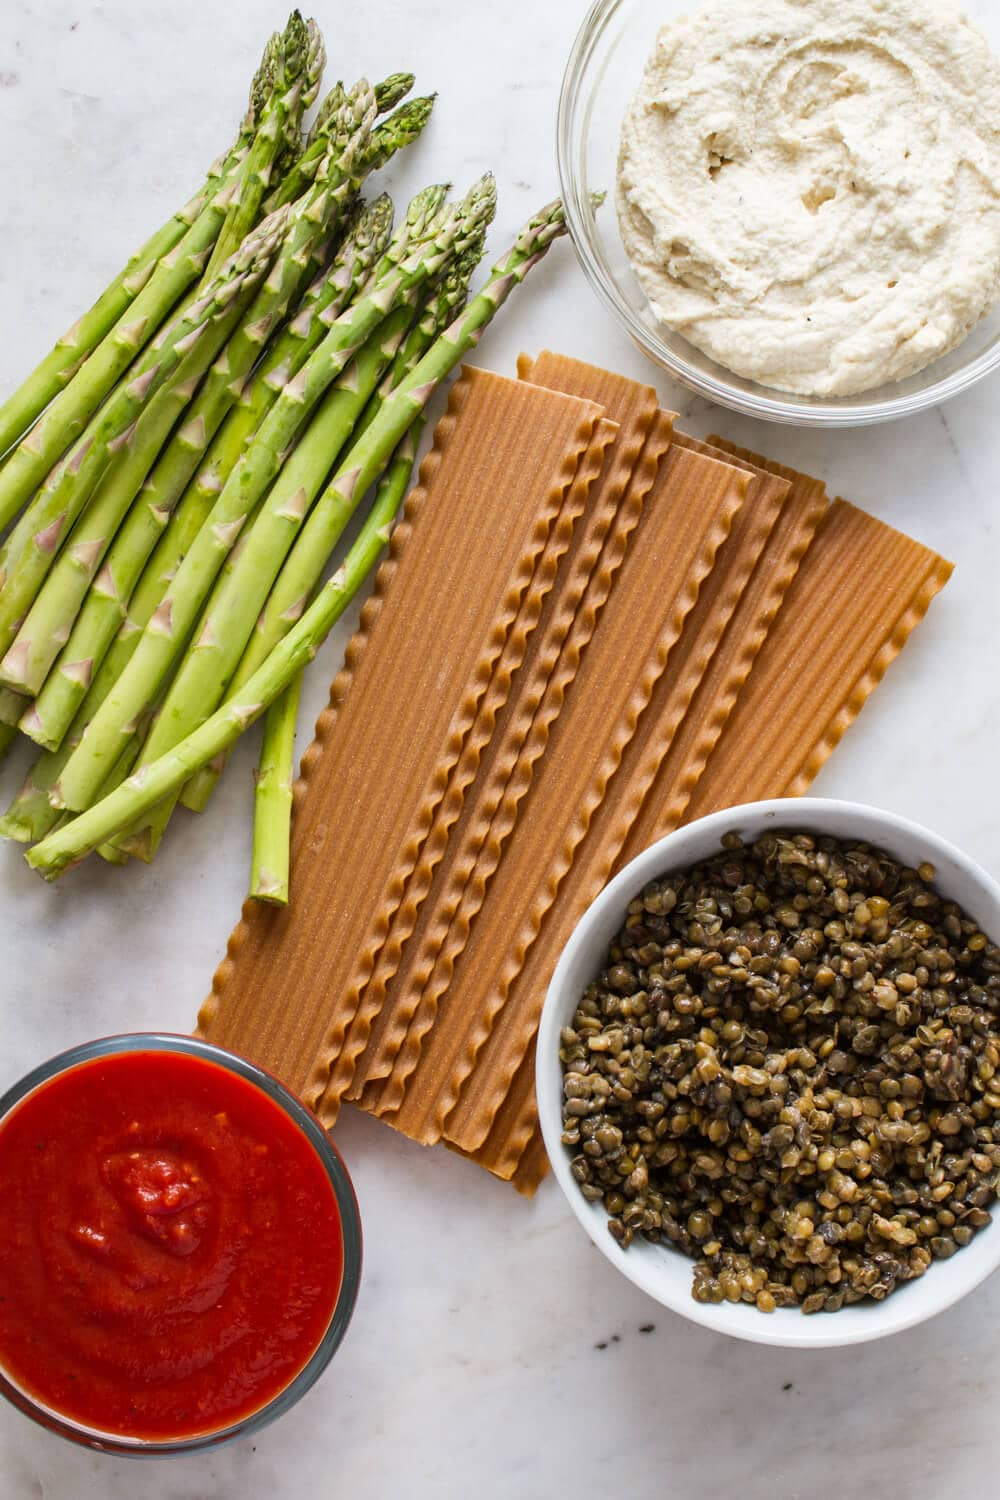 ingredients for vegan lasagna laid on a marble slab, including noodles, pasta sauce, cashew ricotta cheese, lentils and fresh asparagus